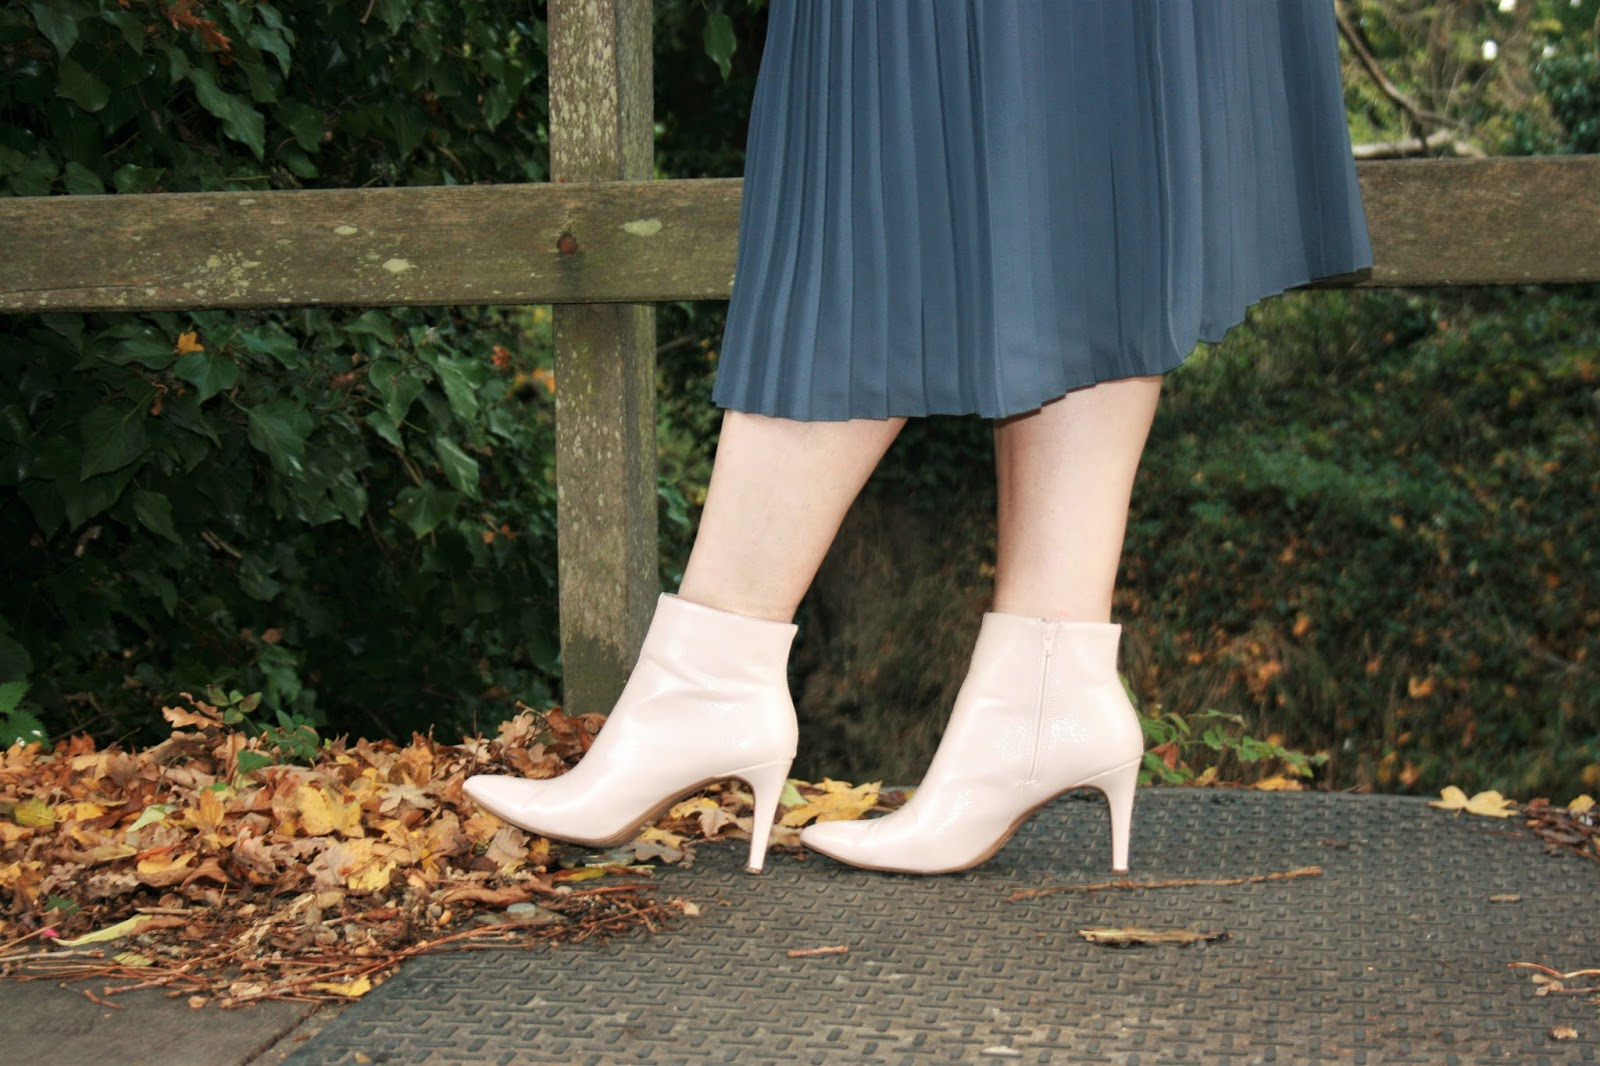 Image showing a close-up of the pink patent boots worn by Mummabstylish blogger Jacqui Berry